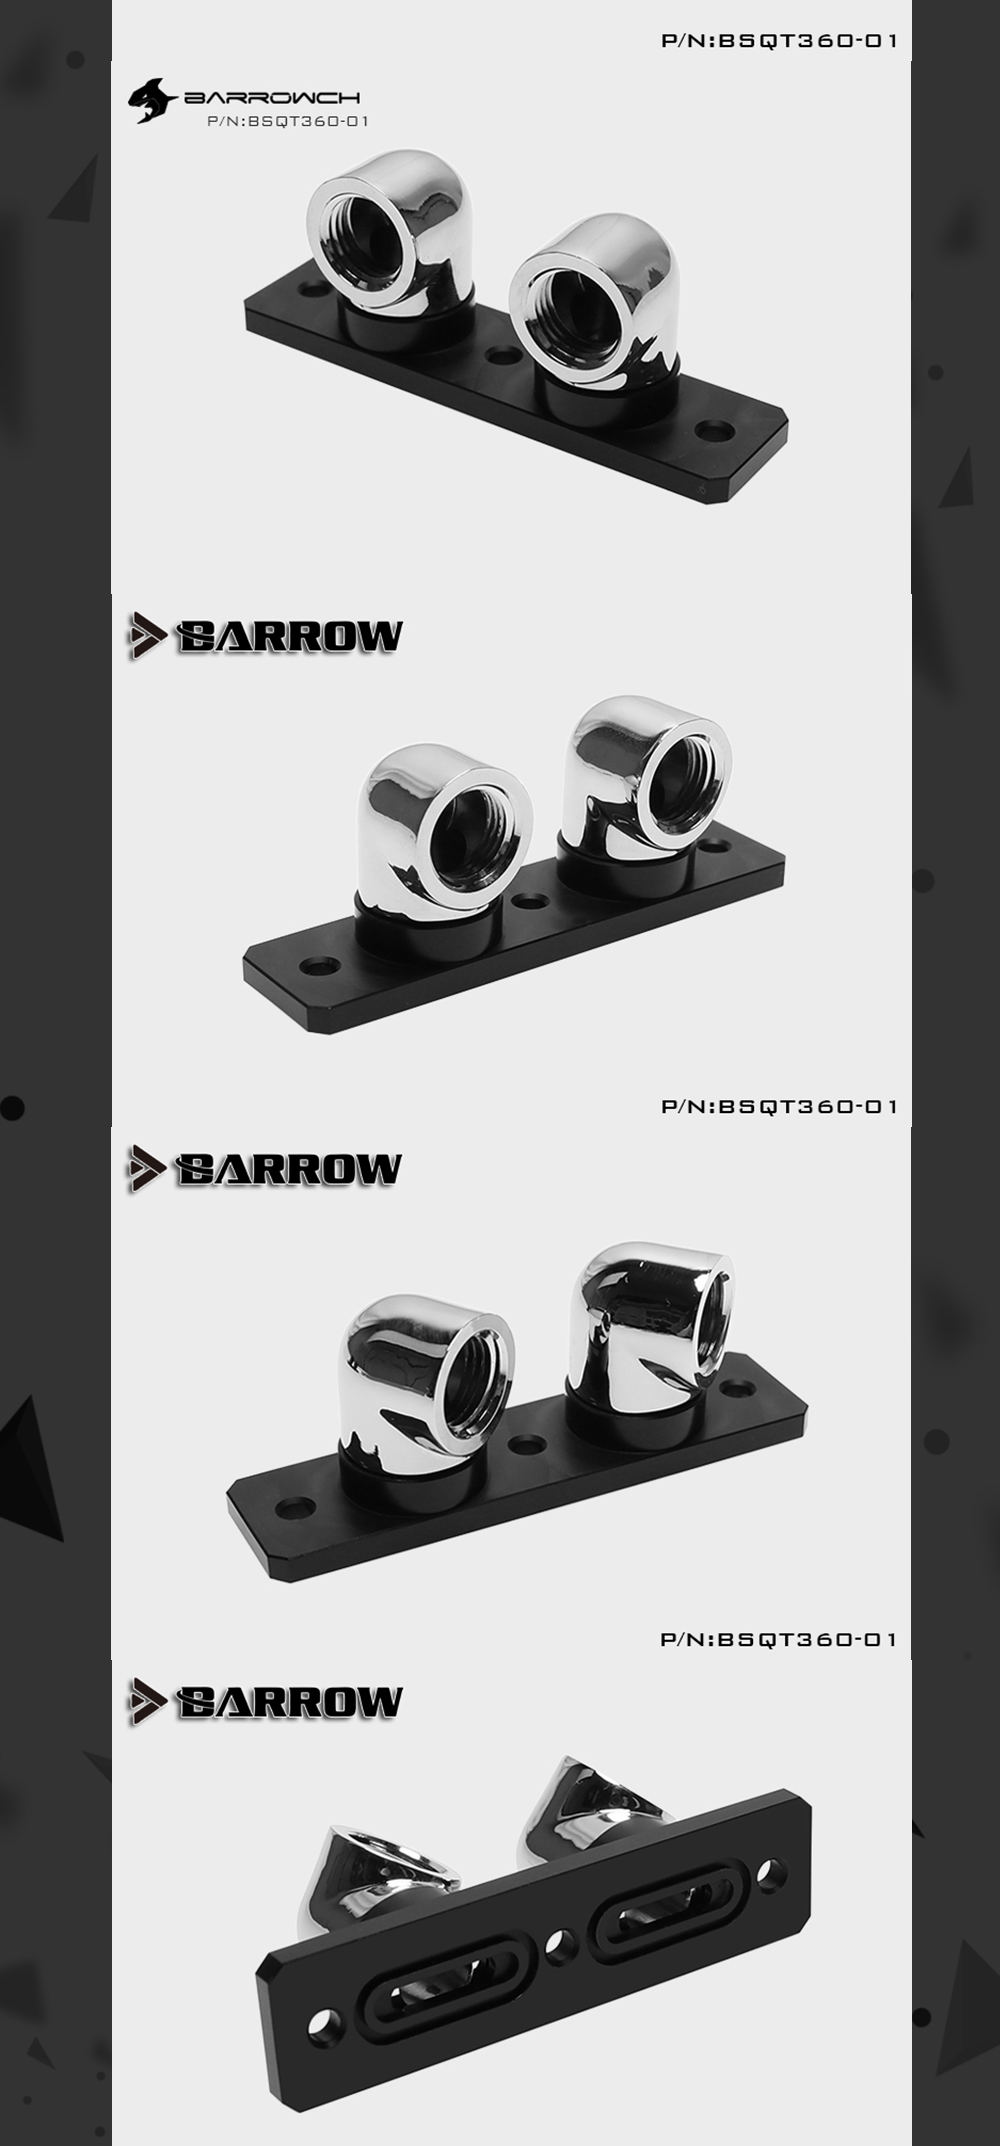 Barrow BSQT360-01, 360 Degree Rotating Bridge For Barrow GPU Block, With 90 Degree Change Direction